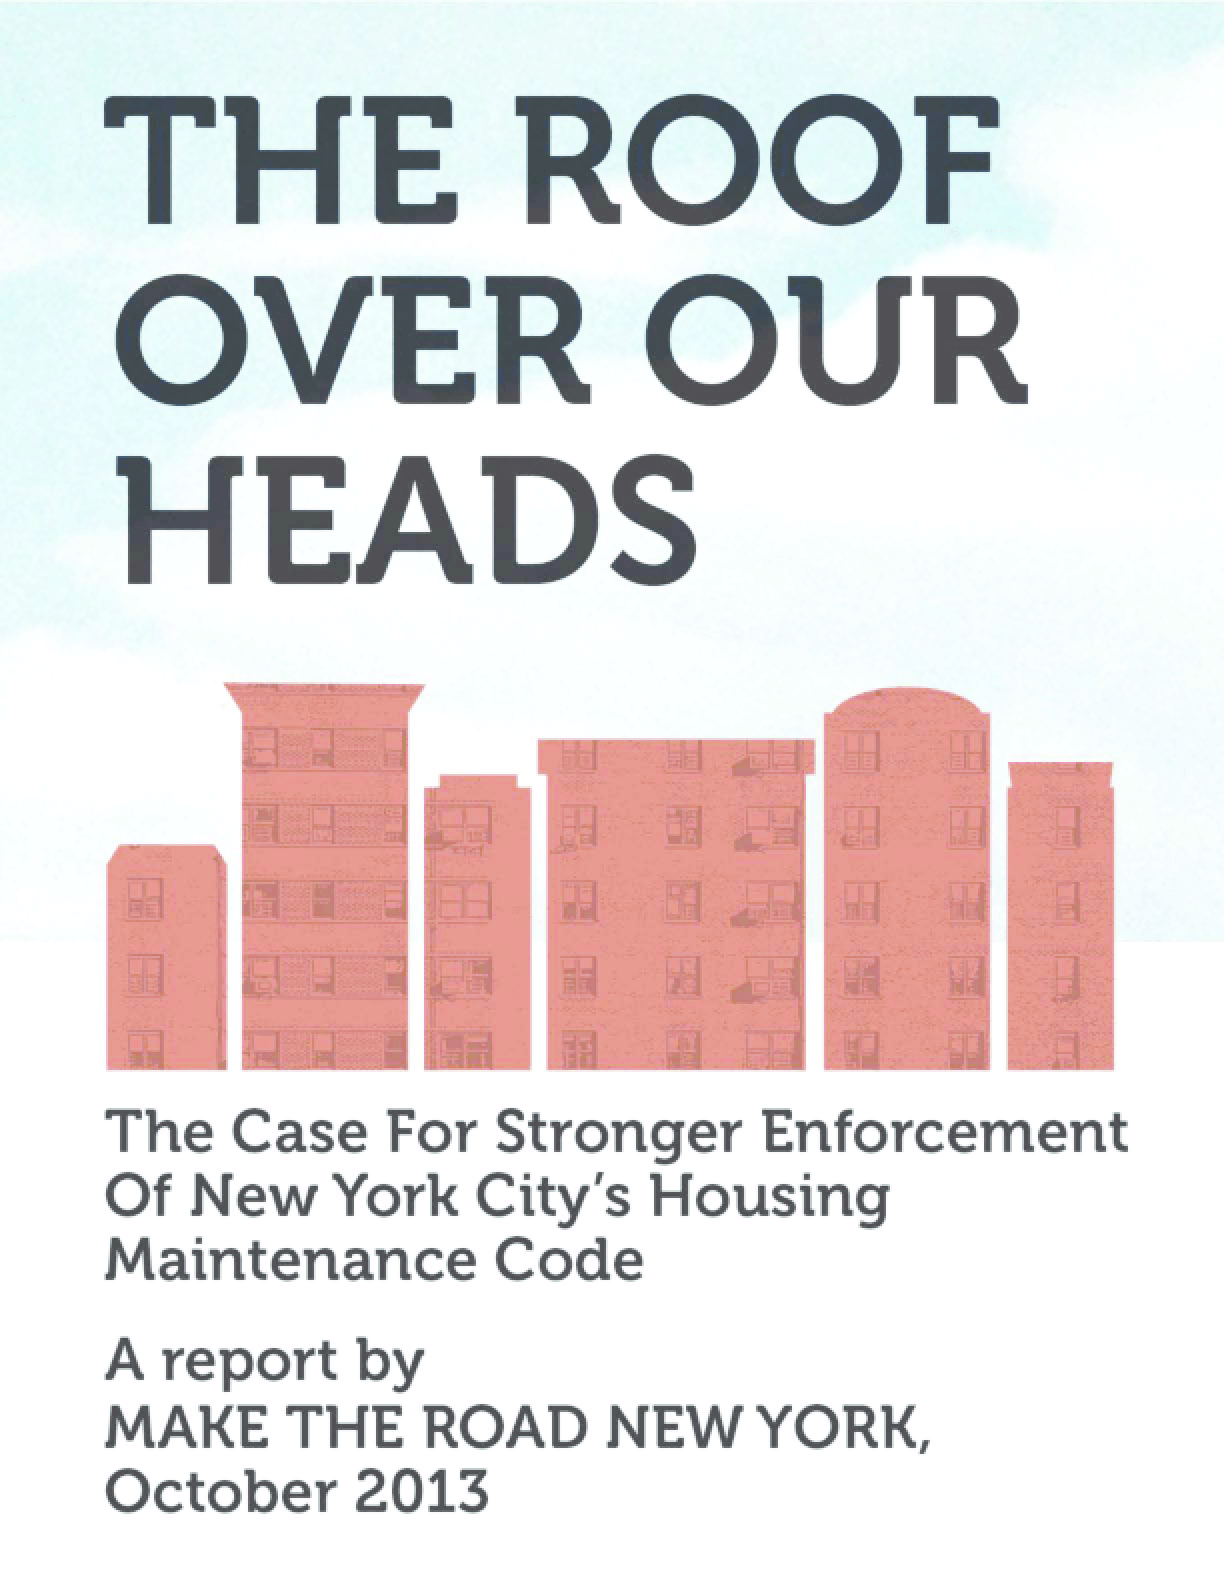 The Roof Over Our Heads: The Case for Stronger Enforcement of New York City's Housing Maintenance Code